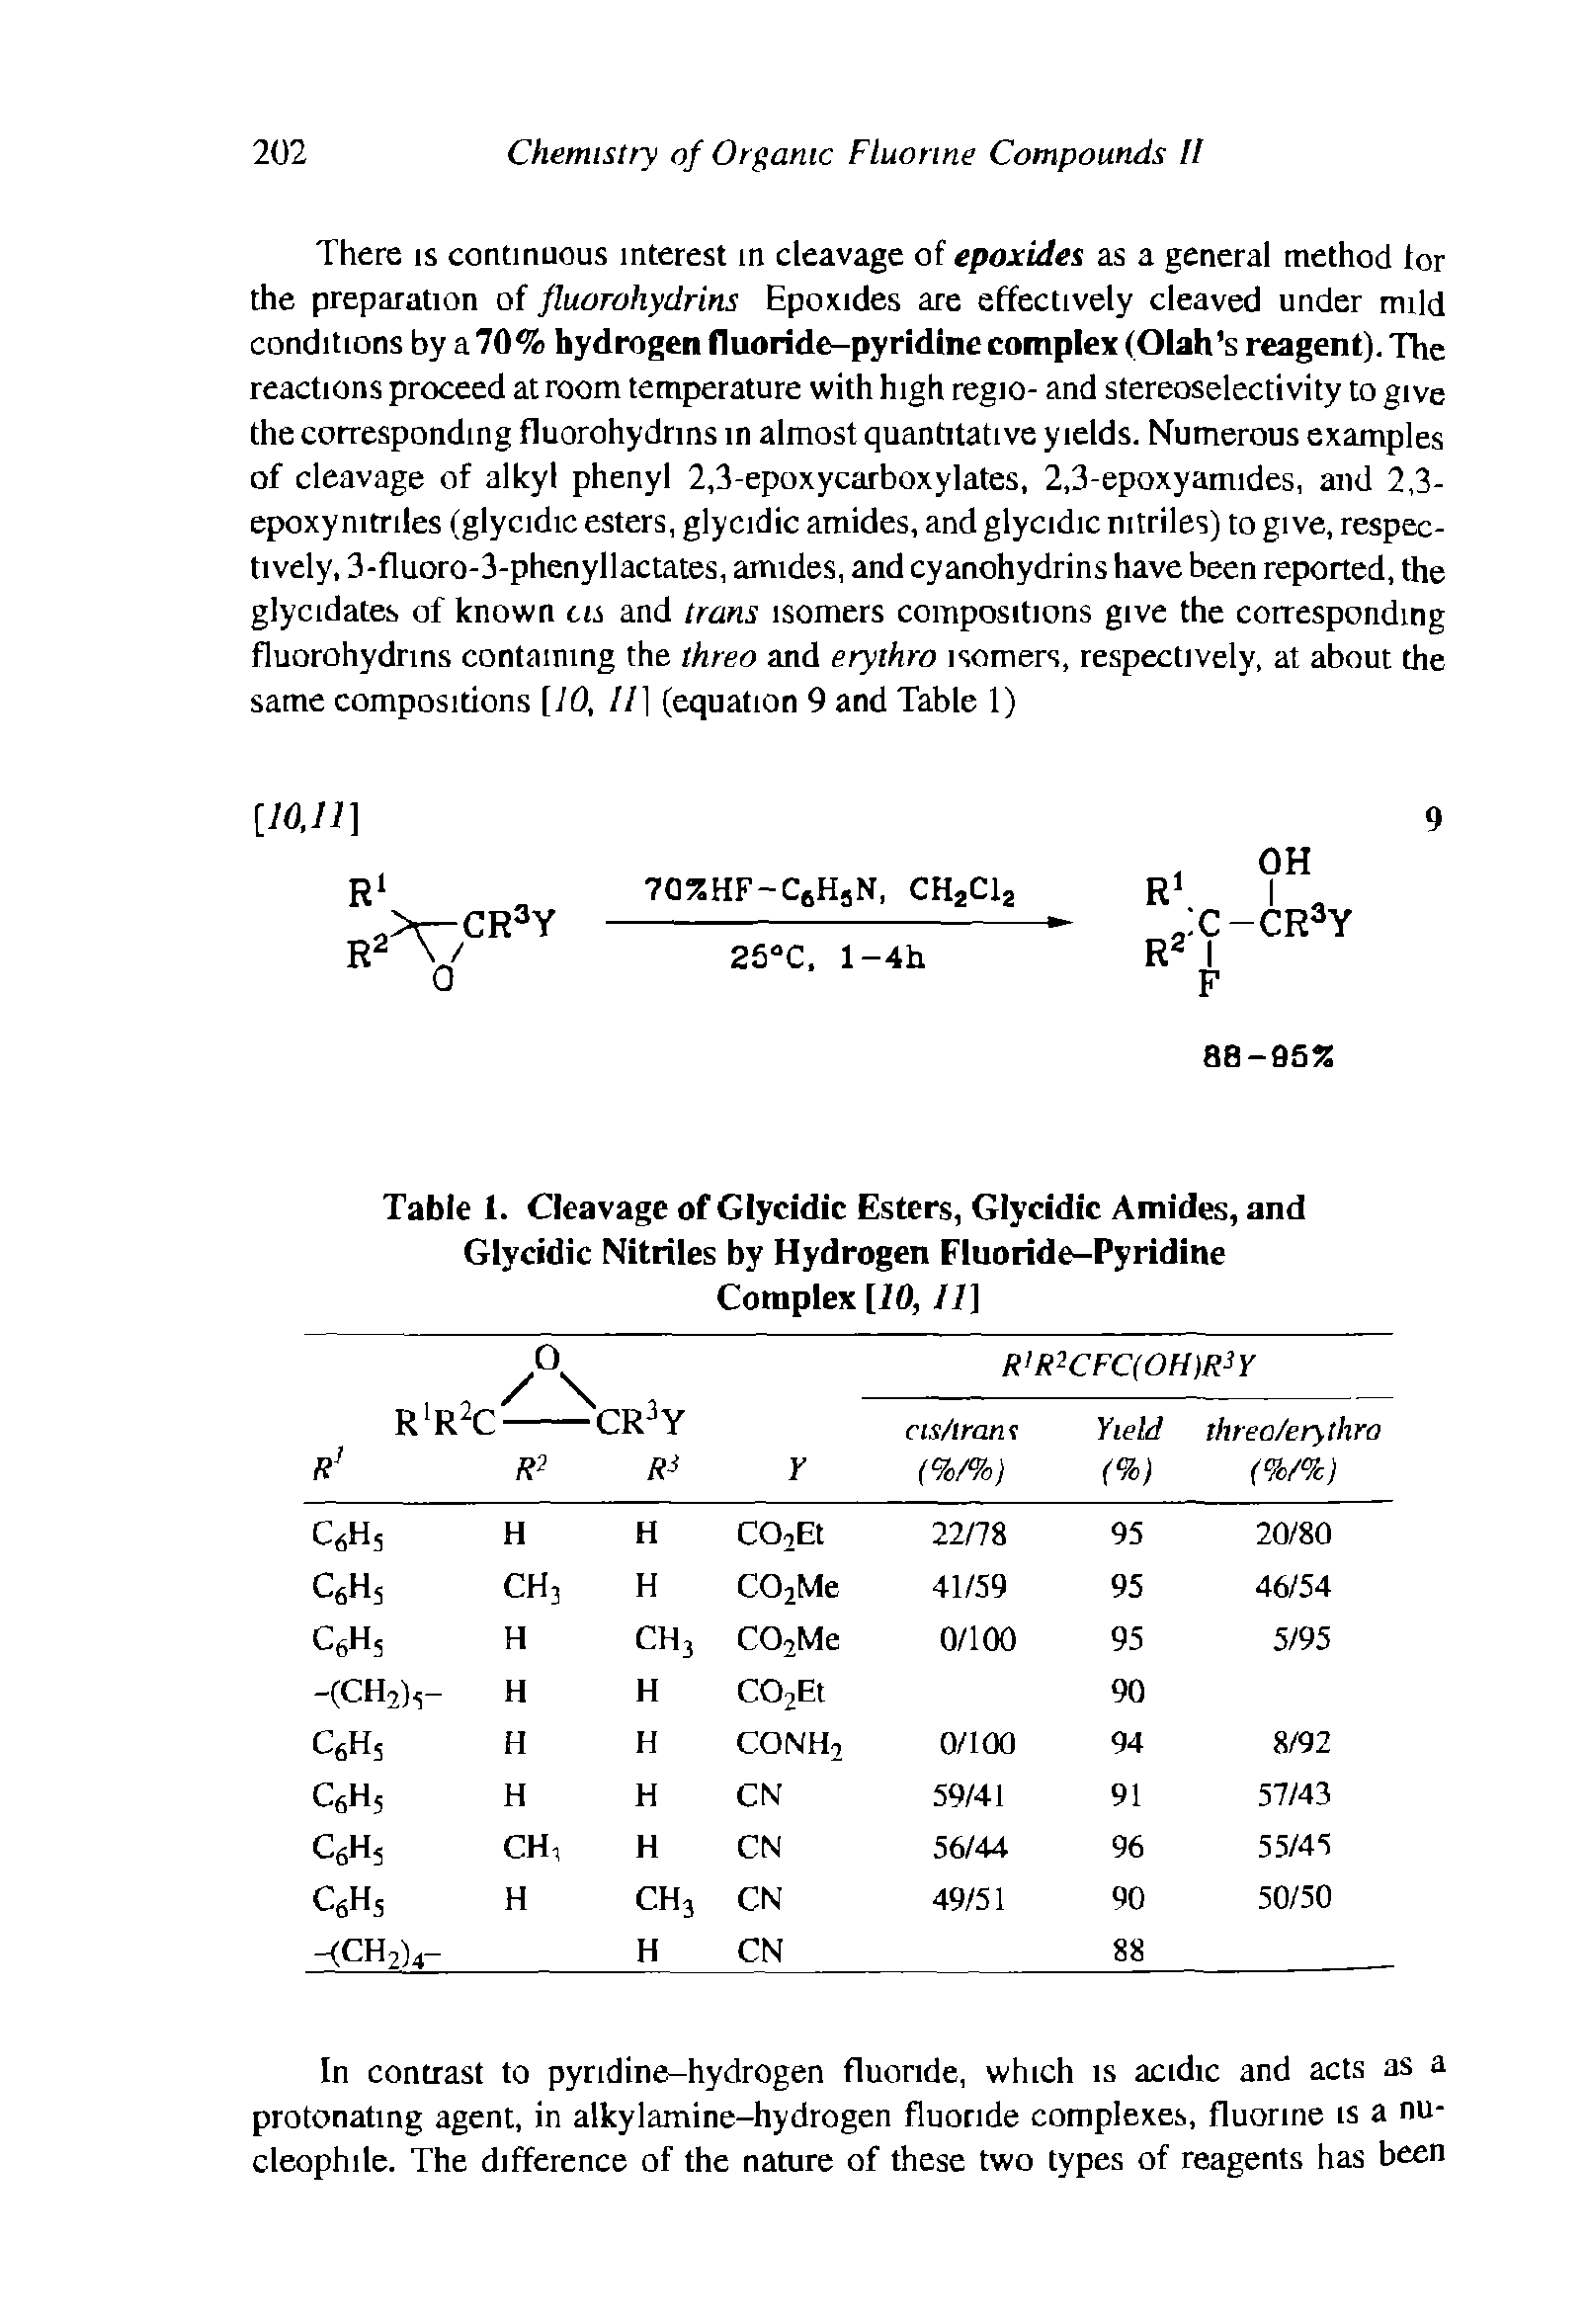 "Table 1. Cleavage of Glycidic Esters, Glycidic Amides, and <a href=""/info/glycidic_nitriles"">Glycidic Nitriles</a> by <a href=""/info/hydrogen_fluoride_pyridine"">Hydrogen Fluoride-Pyridine</a> Complex 110,11]"